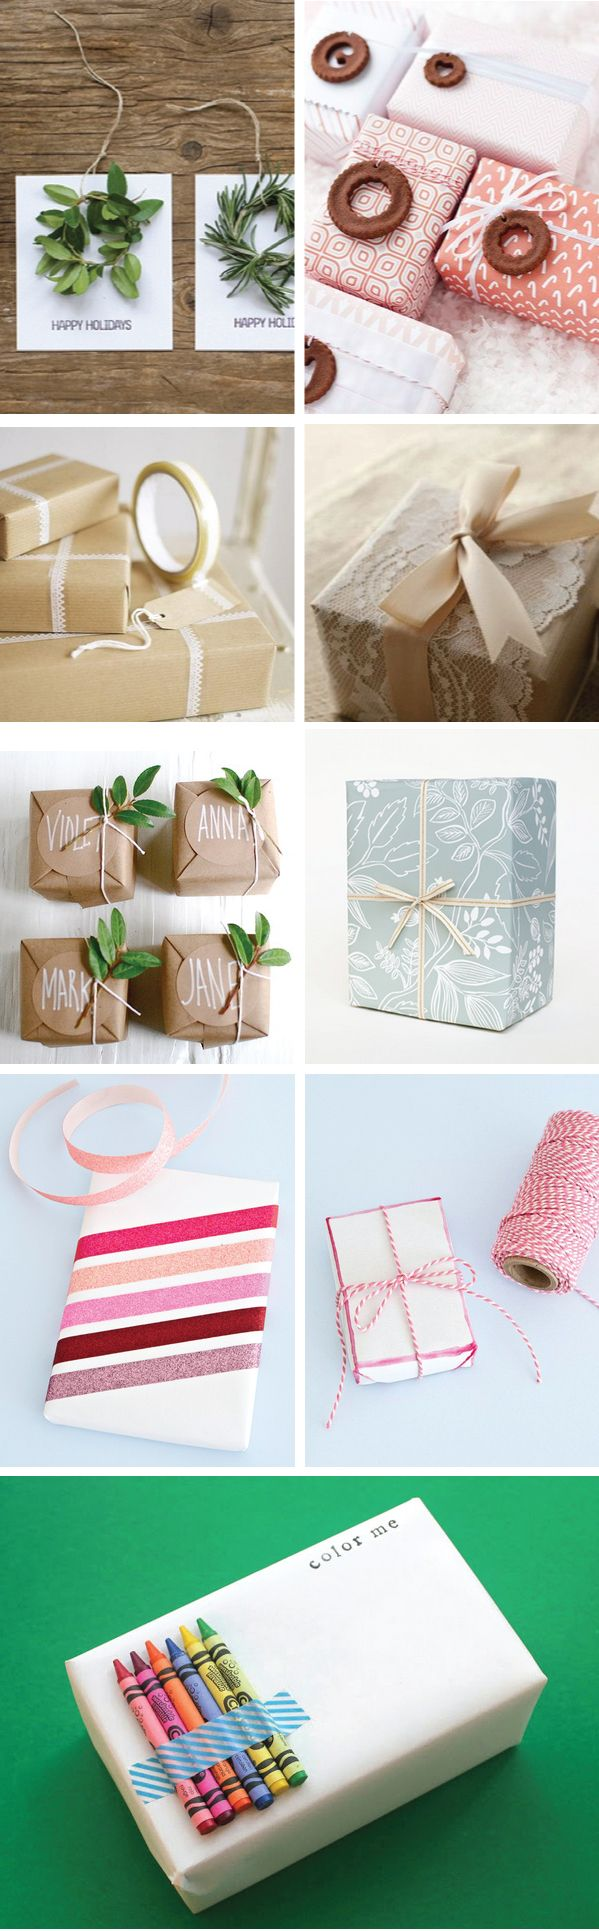 Simple gift wrapping ideas for Christmas http://stephprince.com/understated-gift-wrapping-ideas/